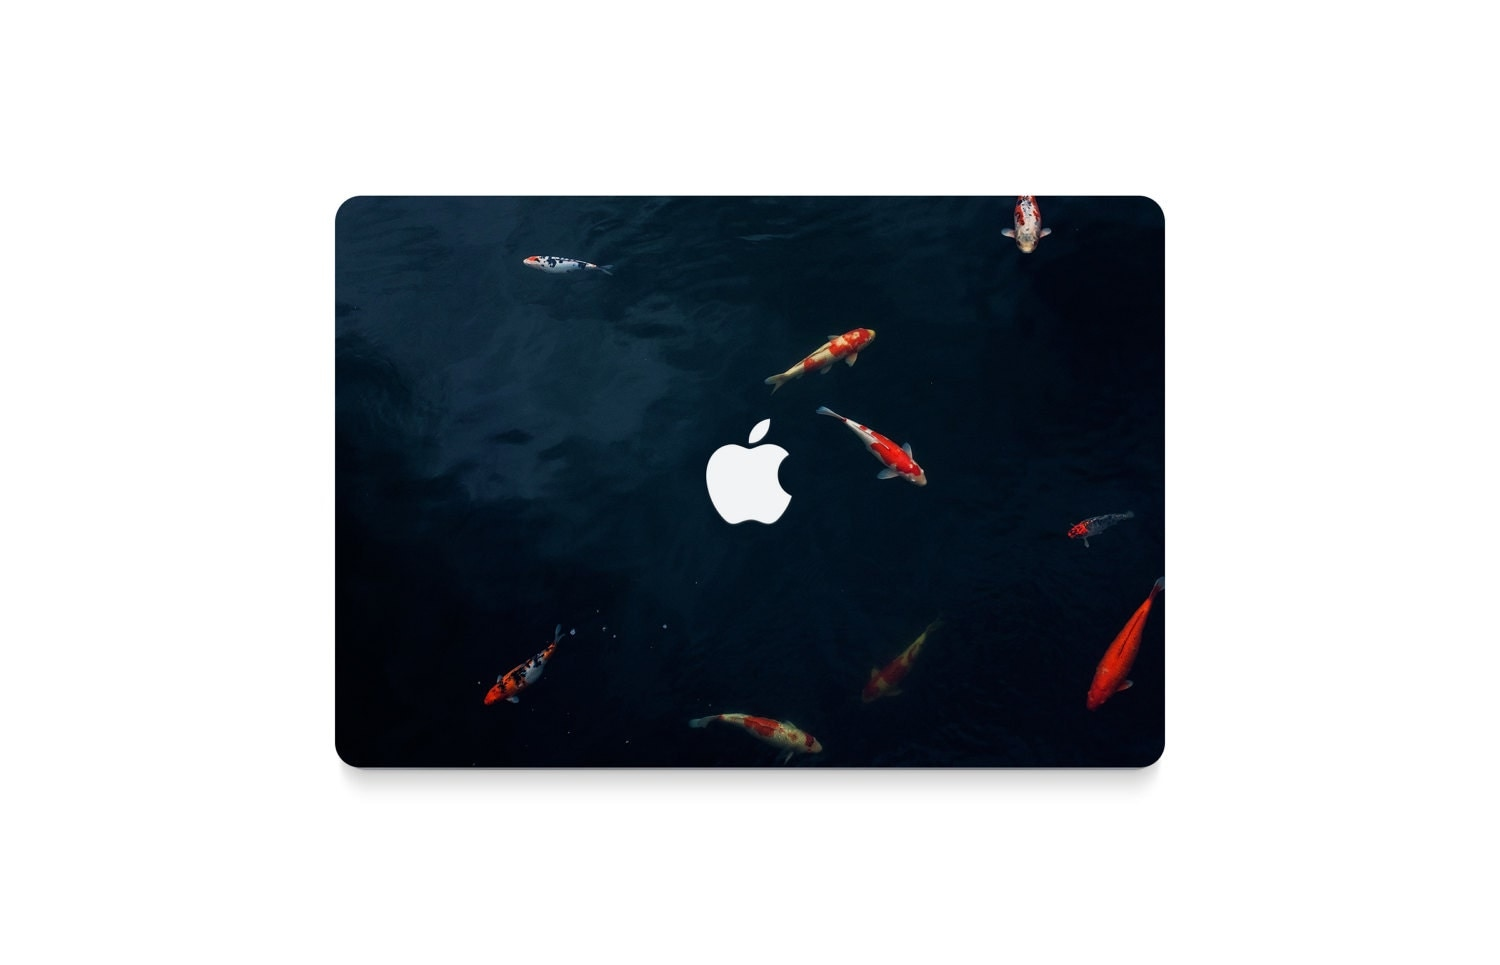 Nature Macbook Decal Macbook Air Sticker Macbook Air Skin Hipster Macbook Skin Hp Laptop Skin Fish Macbook Pro Skin Fish Gift Idea